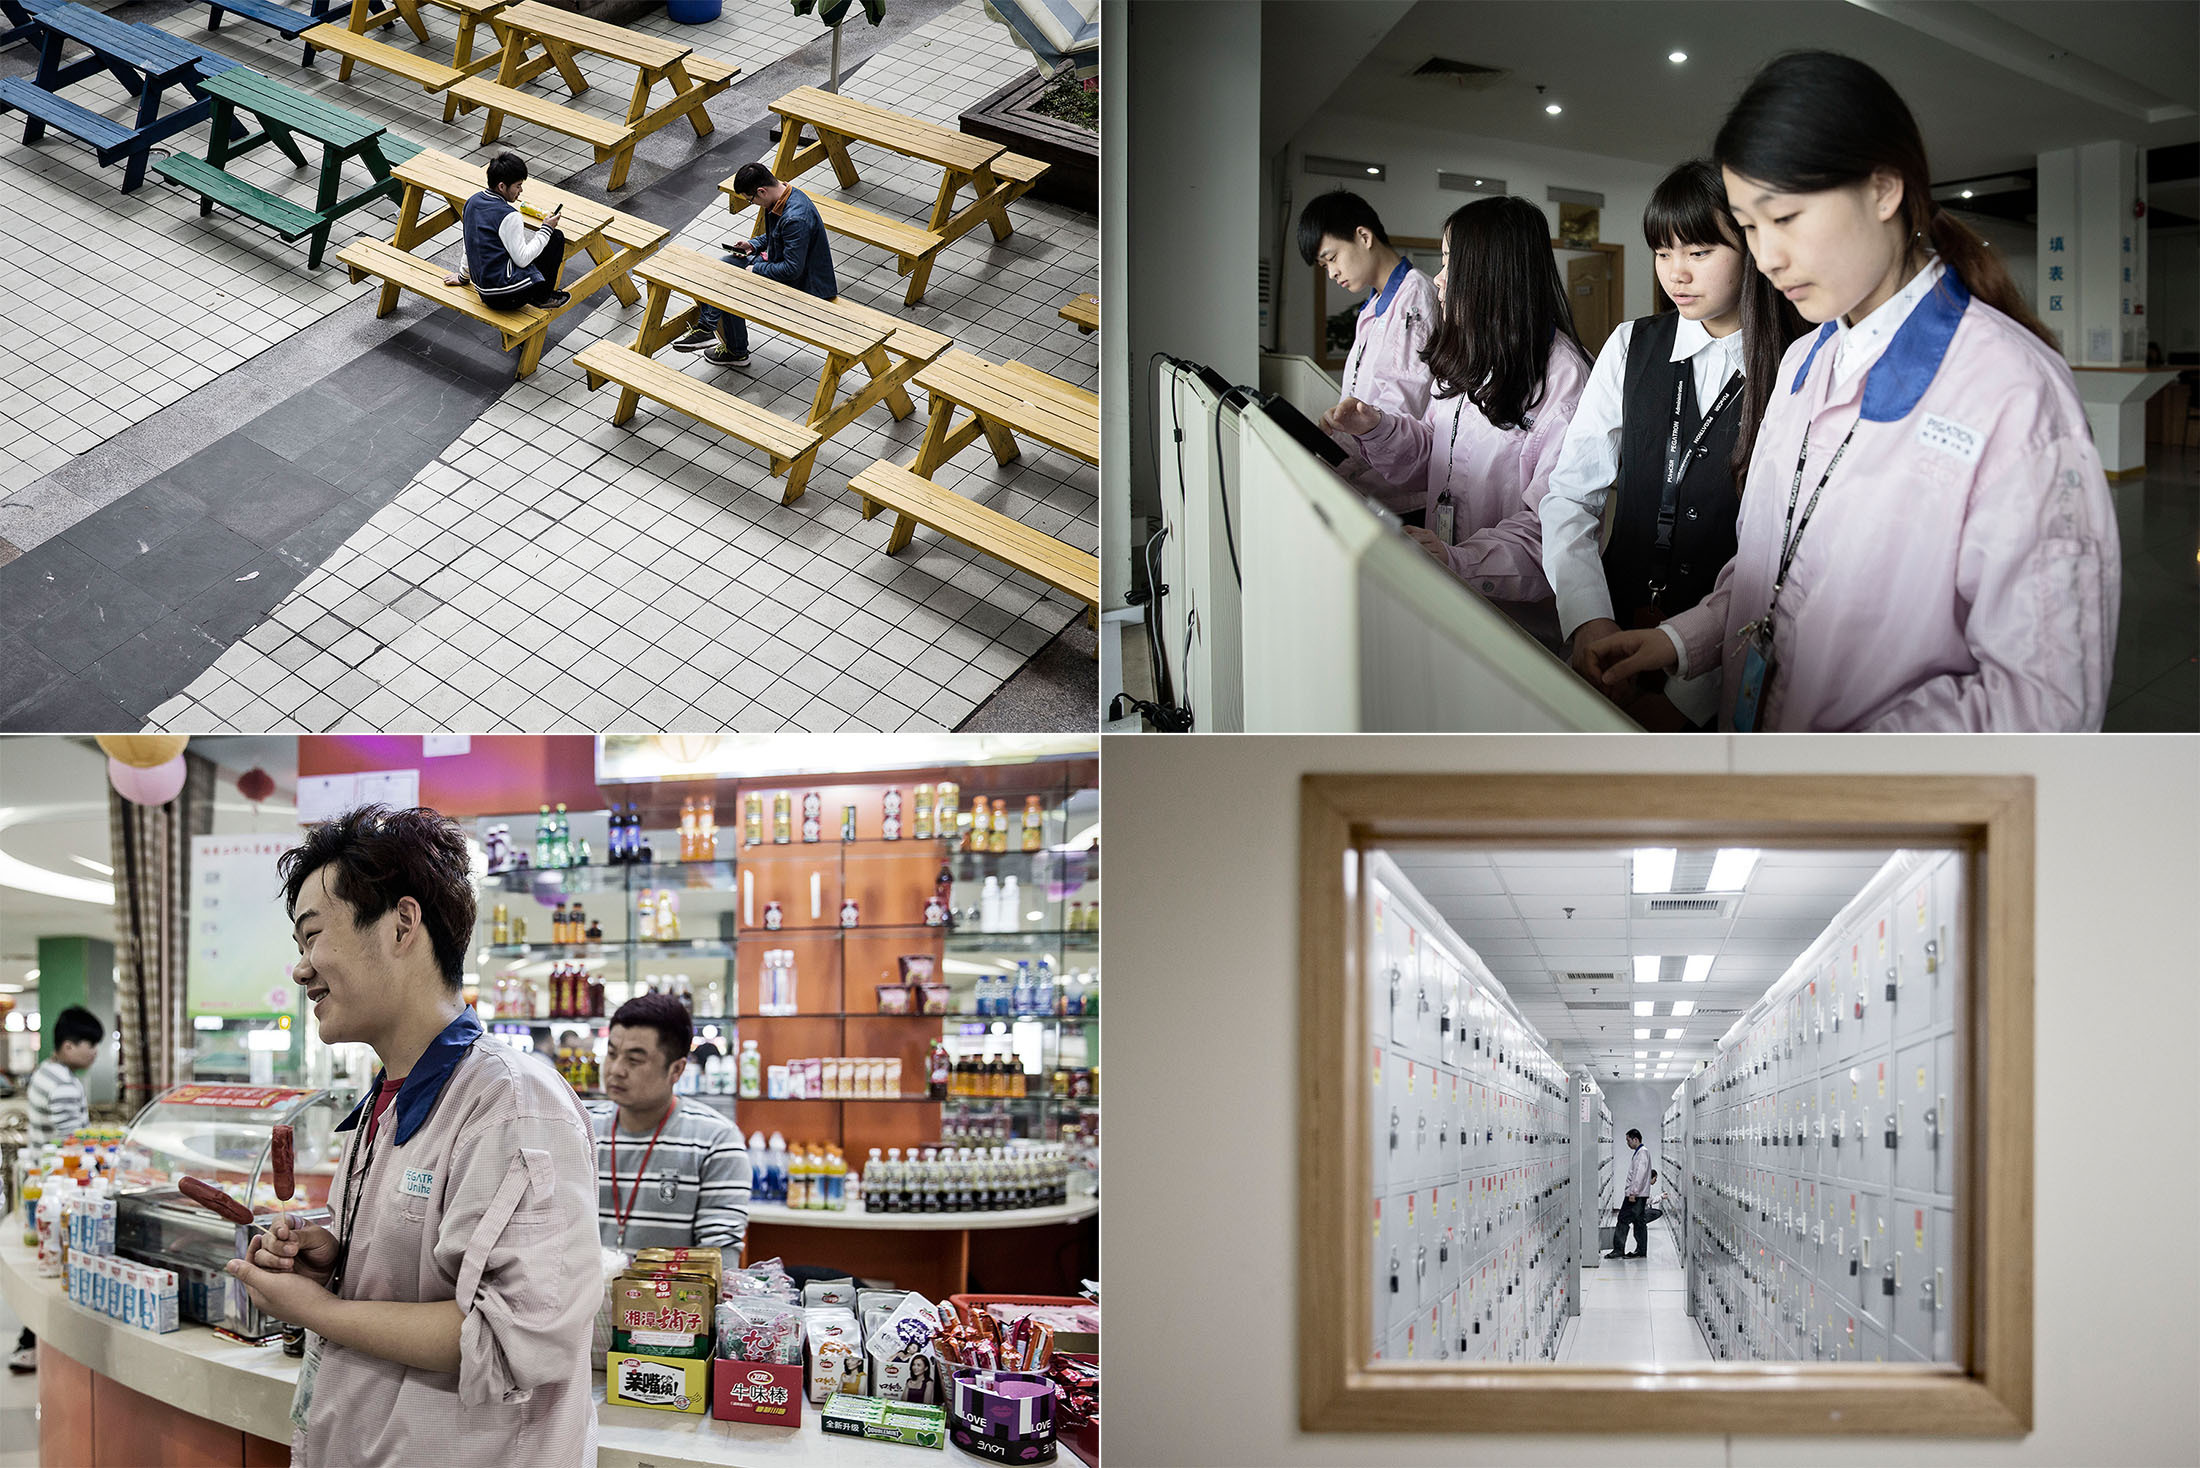 [PHOTOS] How one of the secret factories for the production of iPhone